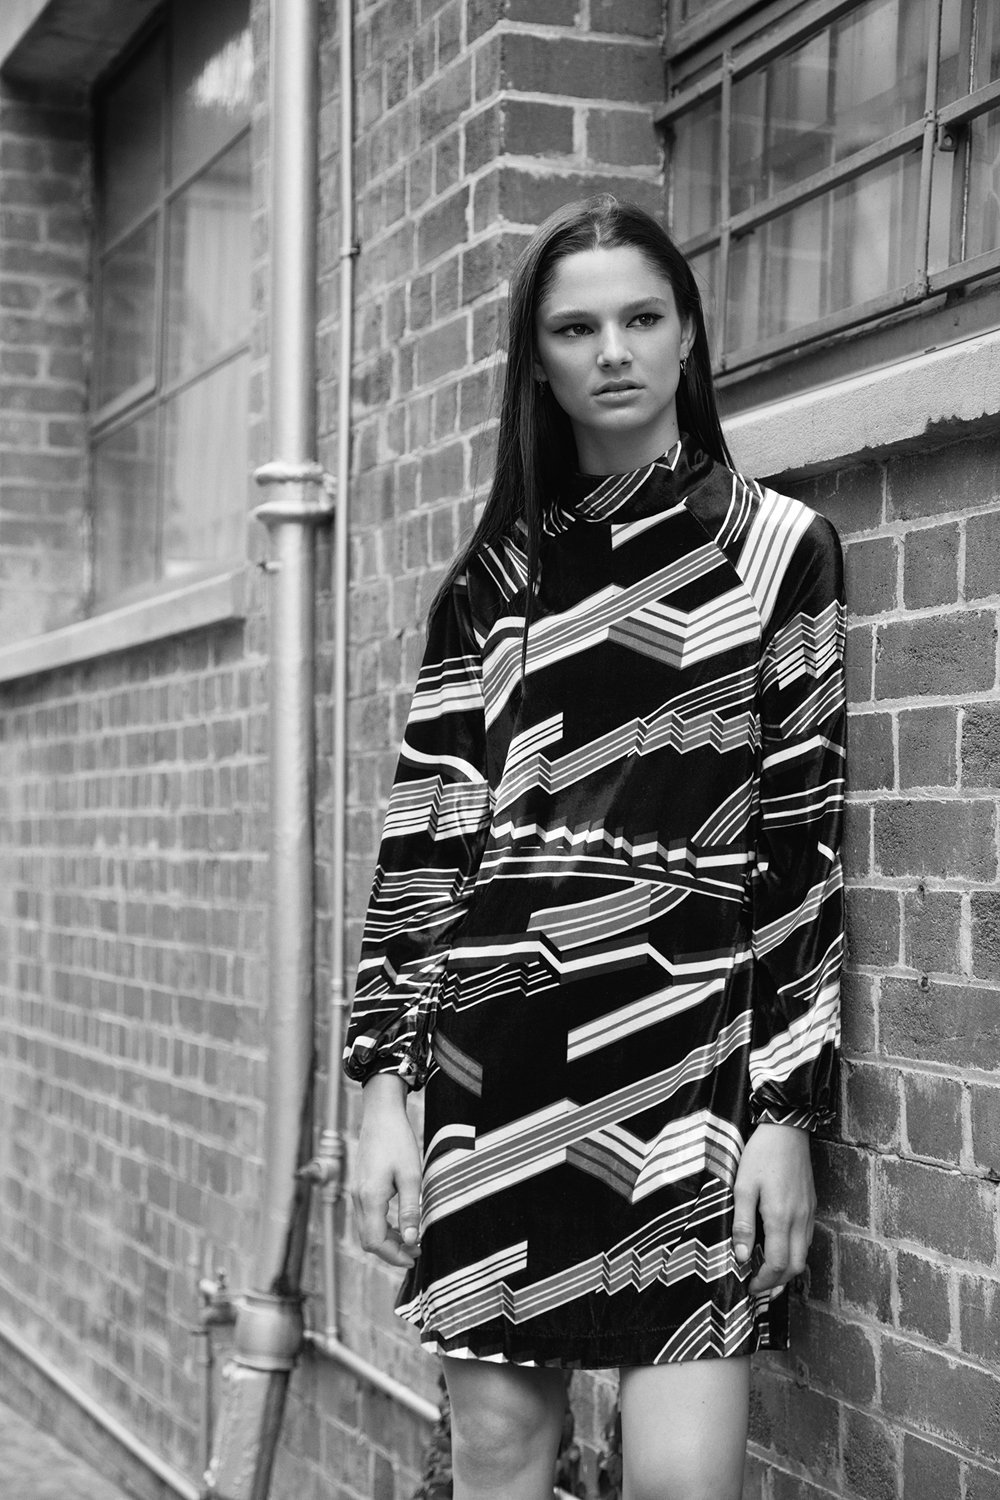 Emily Rink Photographed by Adam Bryce and Styled By Chloe Hill for Oyster Mag Feat Kenzo from Stylebop